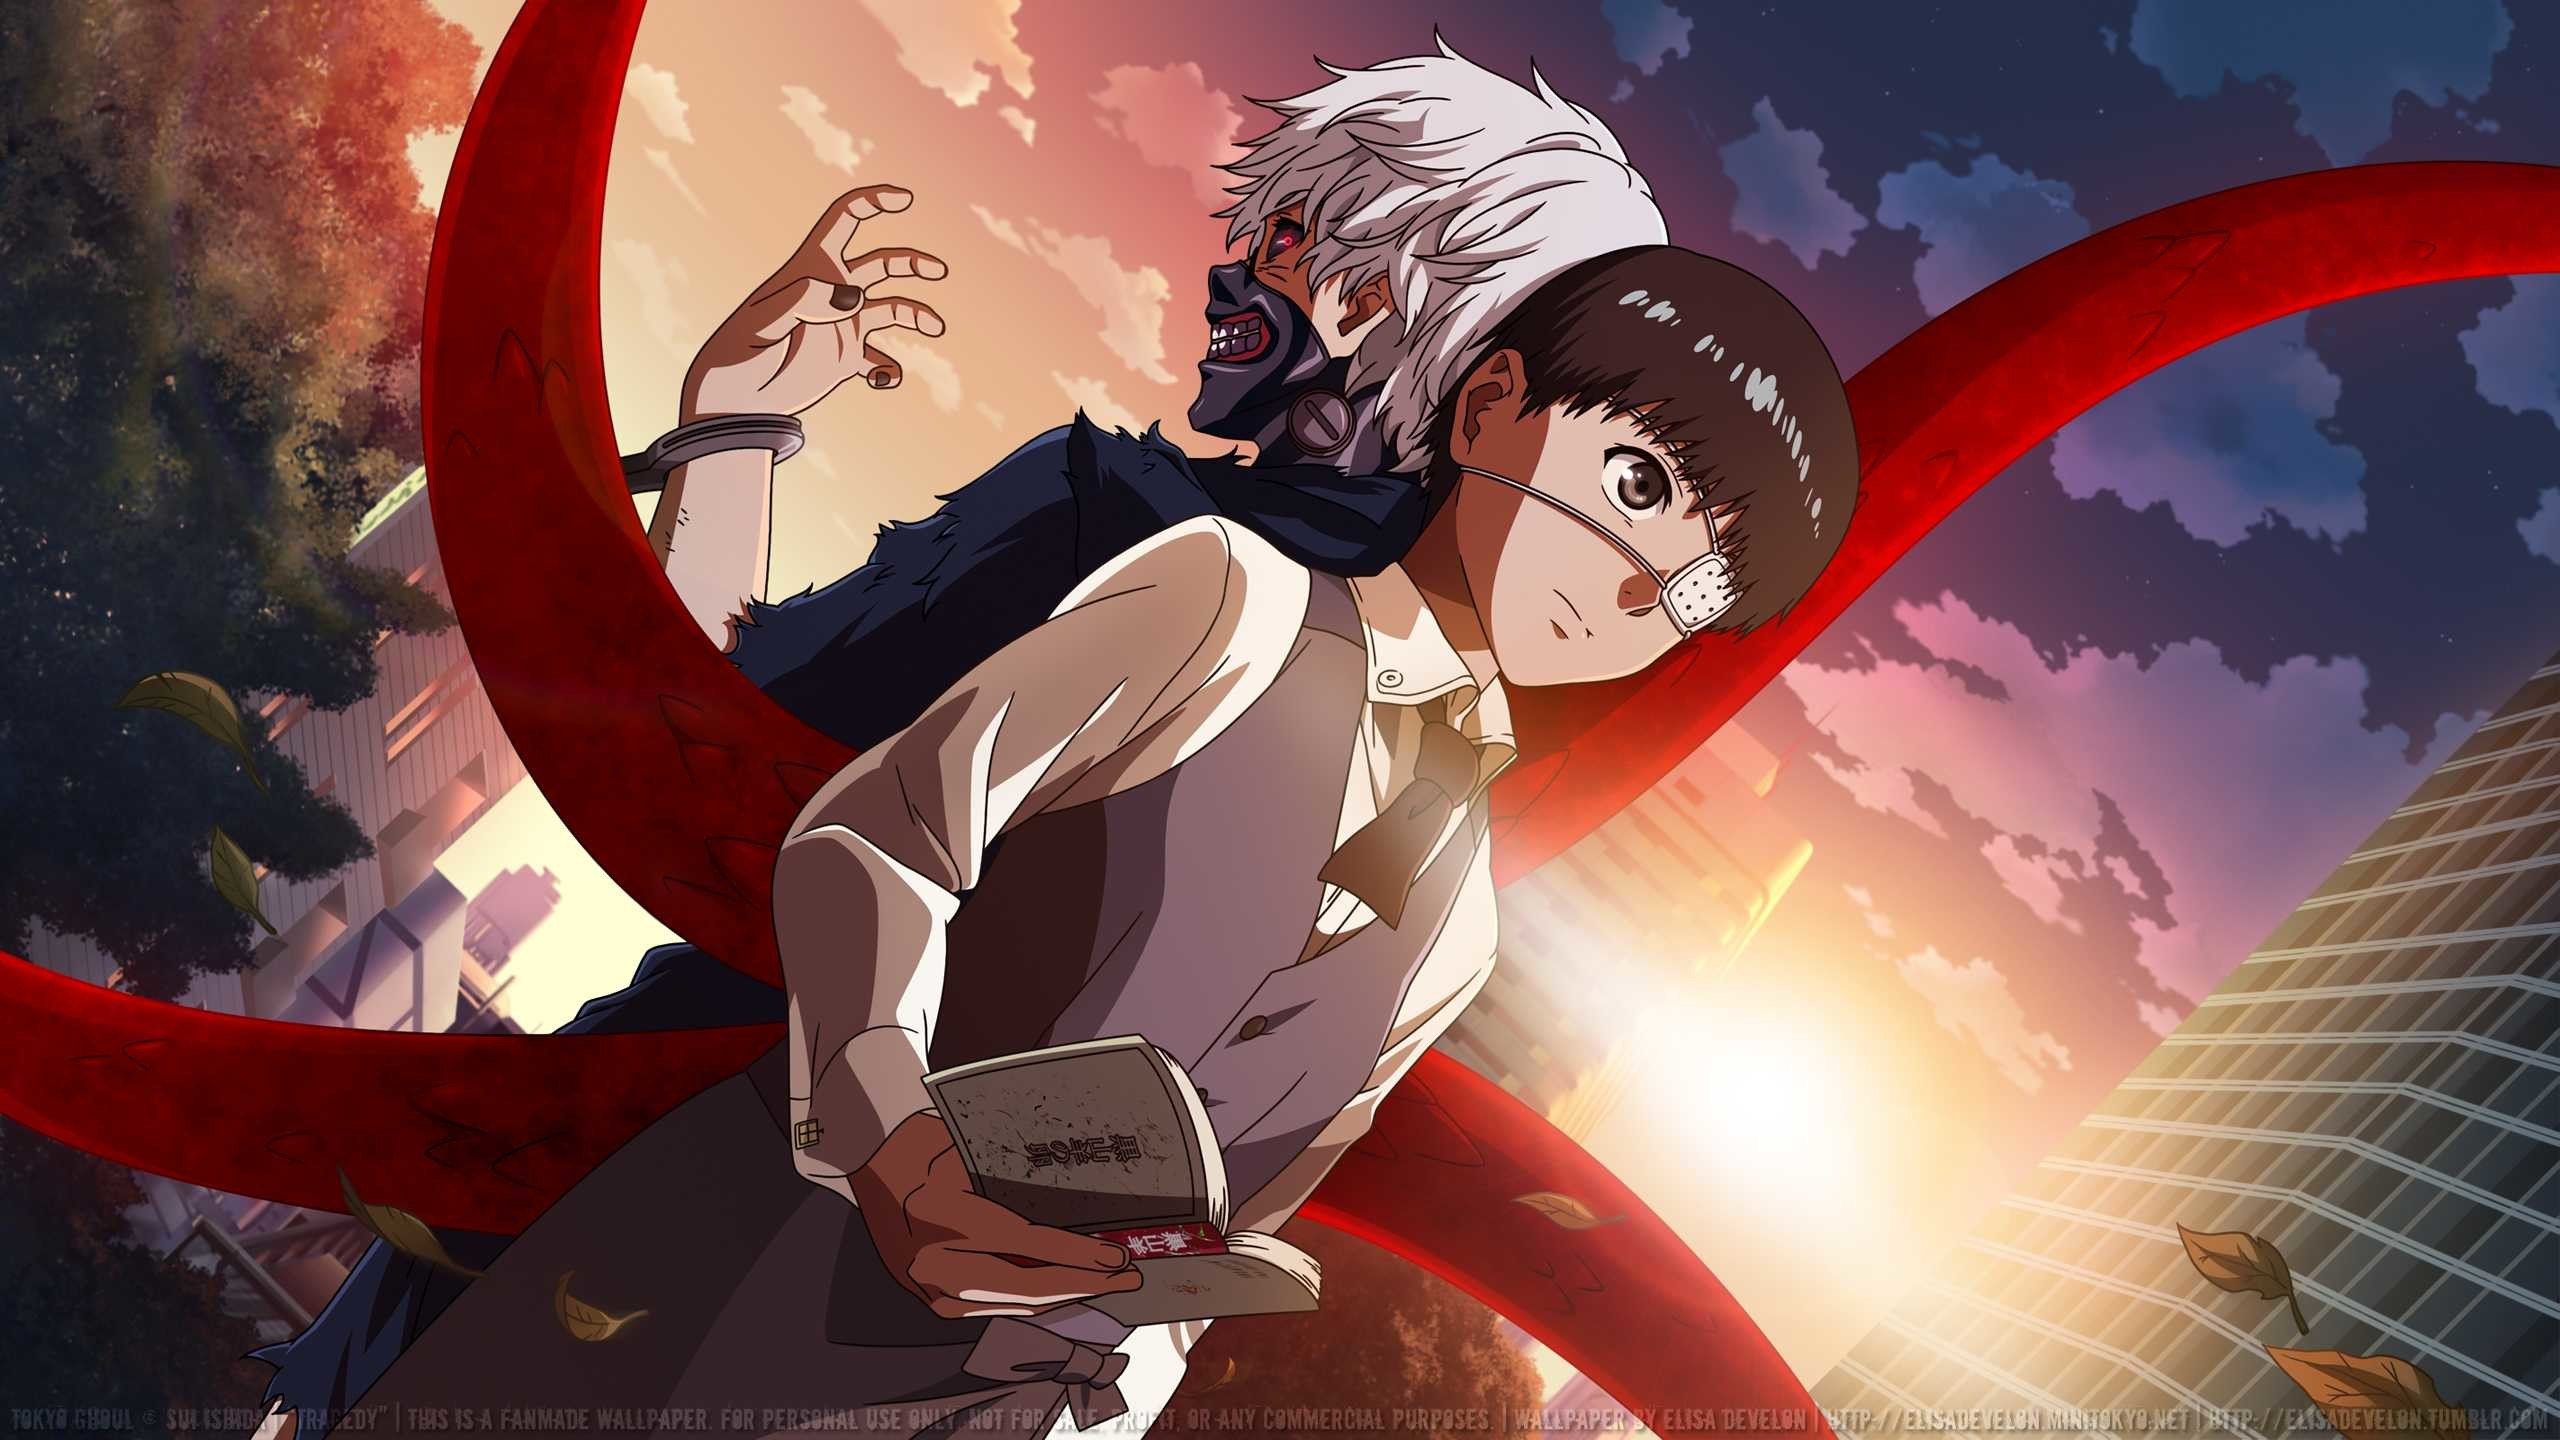 Tokyo Ghoul Wallpaper HD Collection Of Tokyo Ghoul Anime